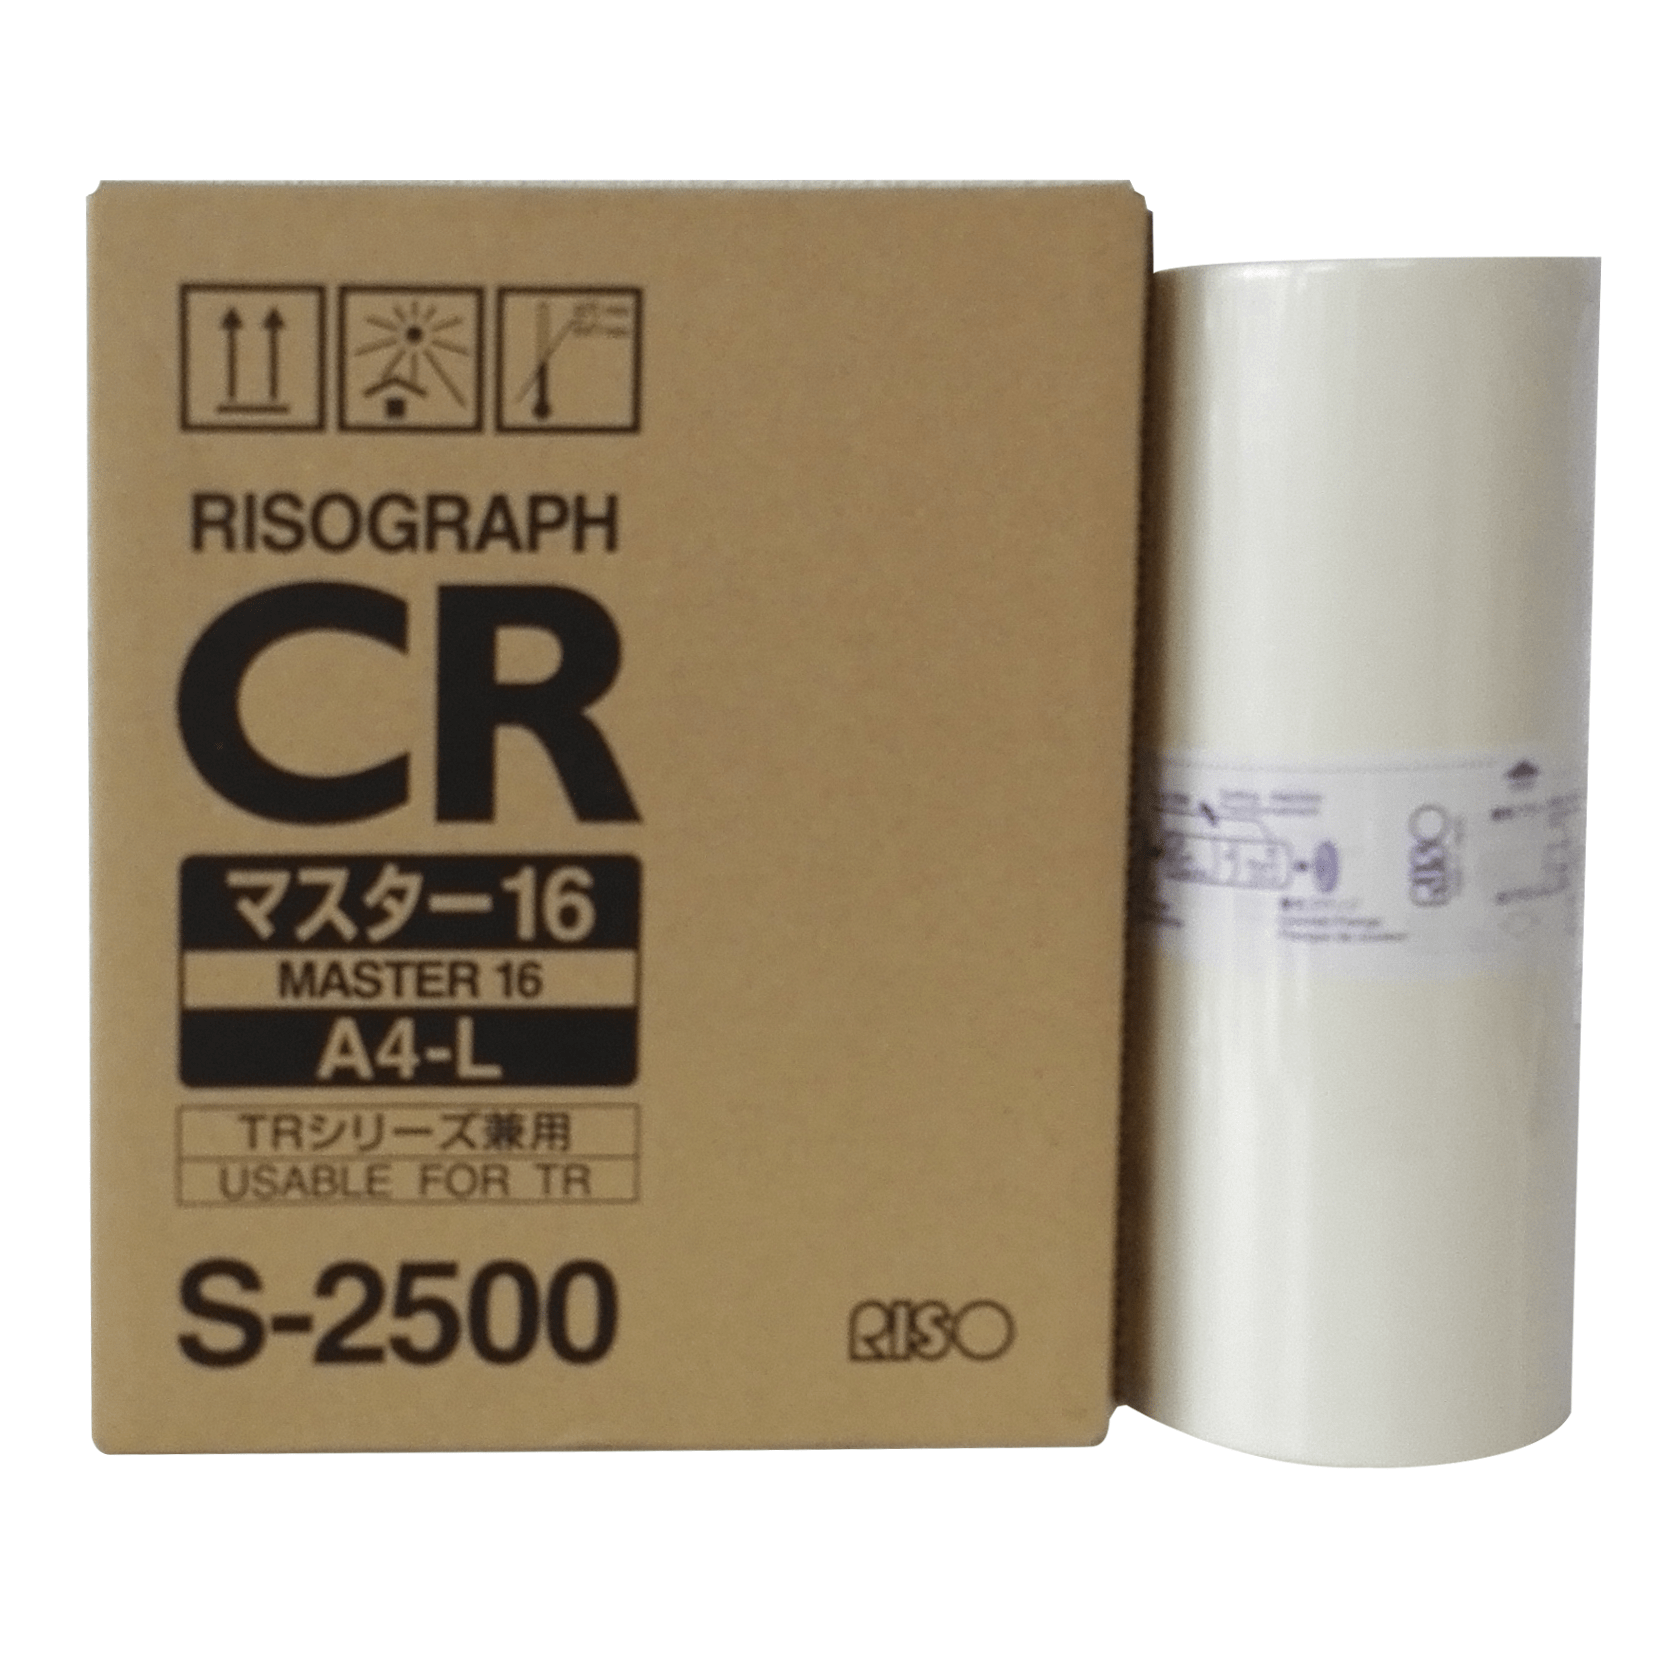 Risograph CR - Master 16 - A4-L - S-2500 (usable for TR)